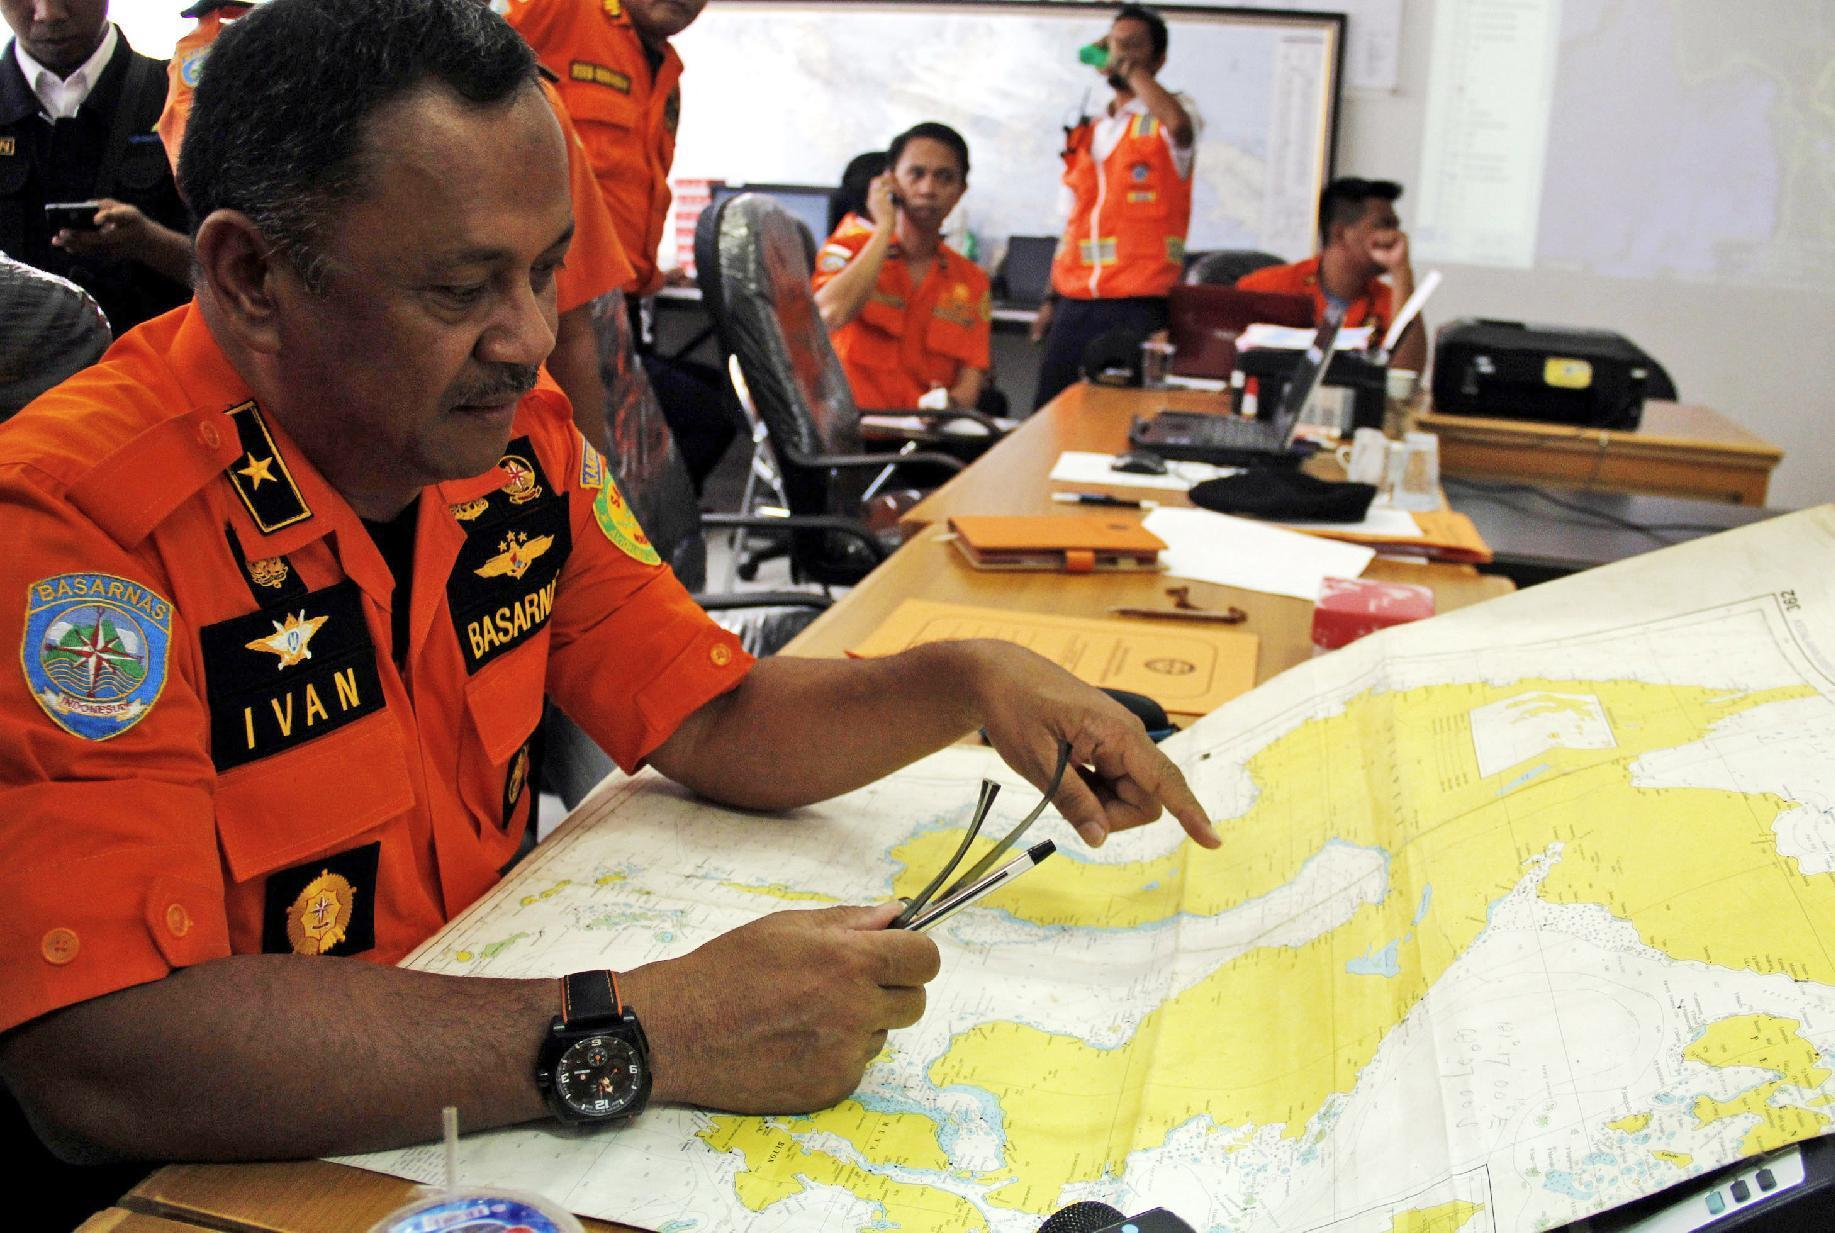 Rescuers say wreckage of missing Indonesian plane is found